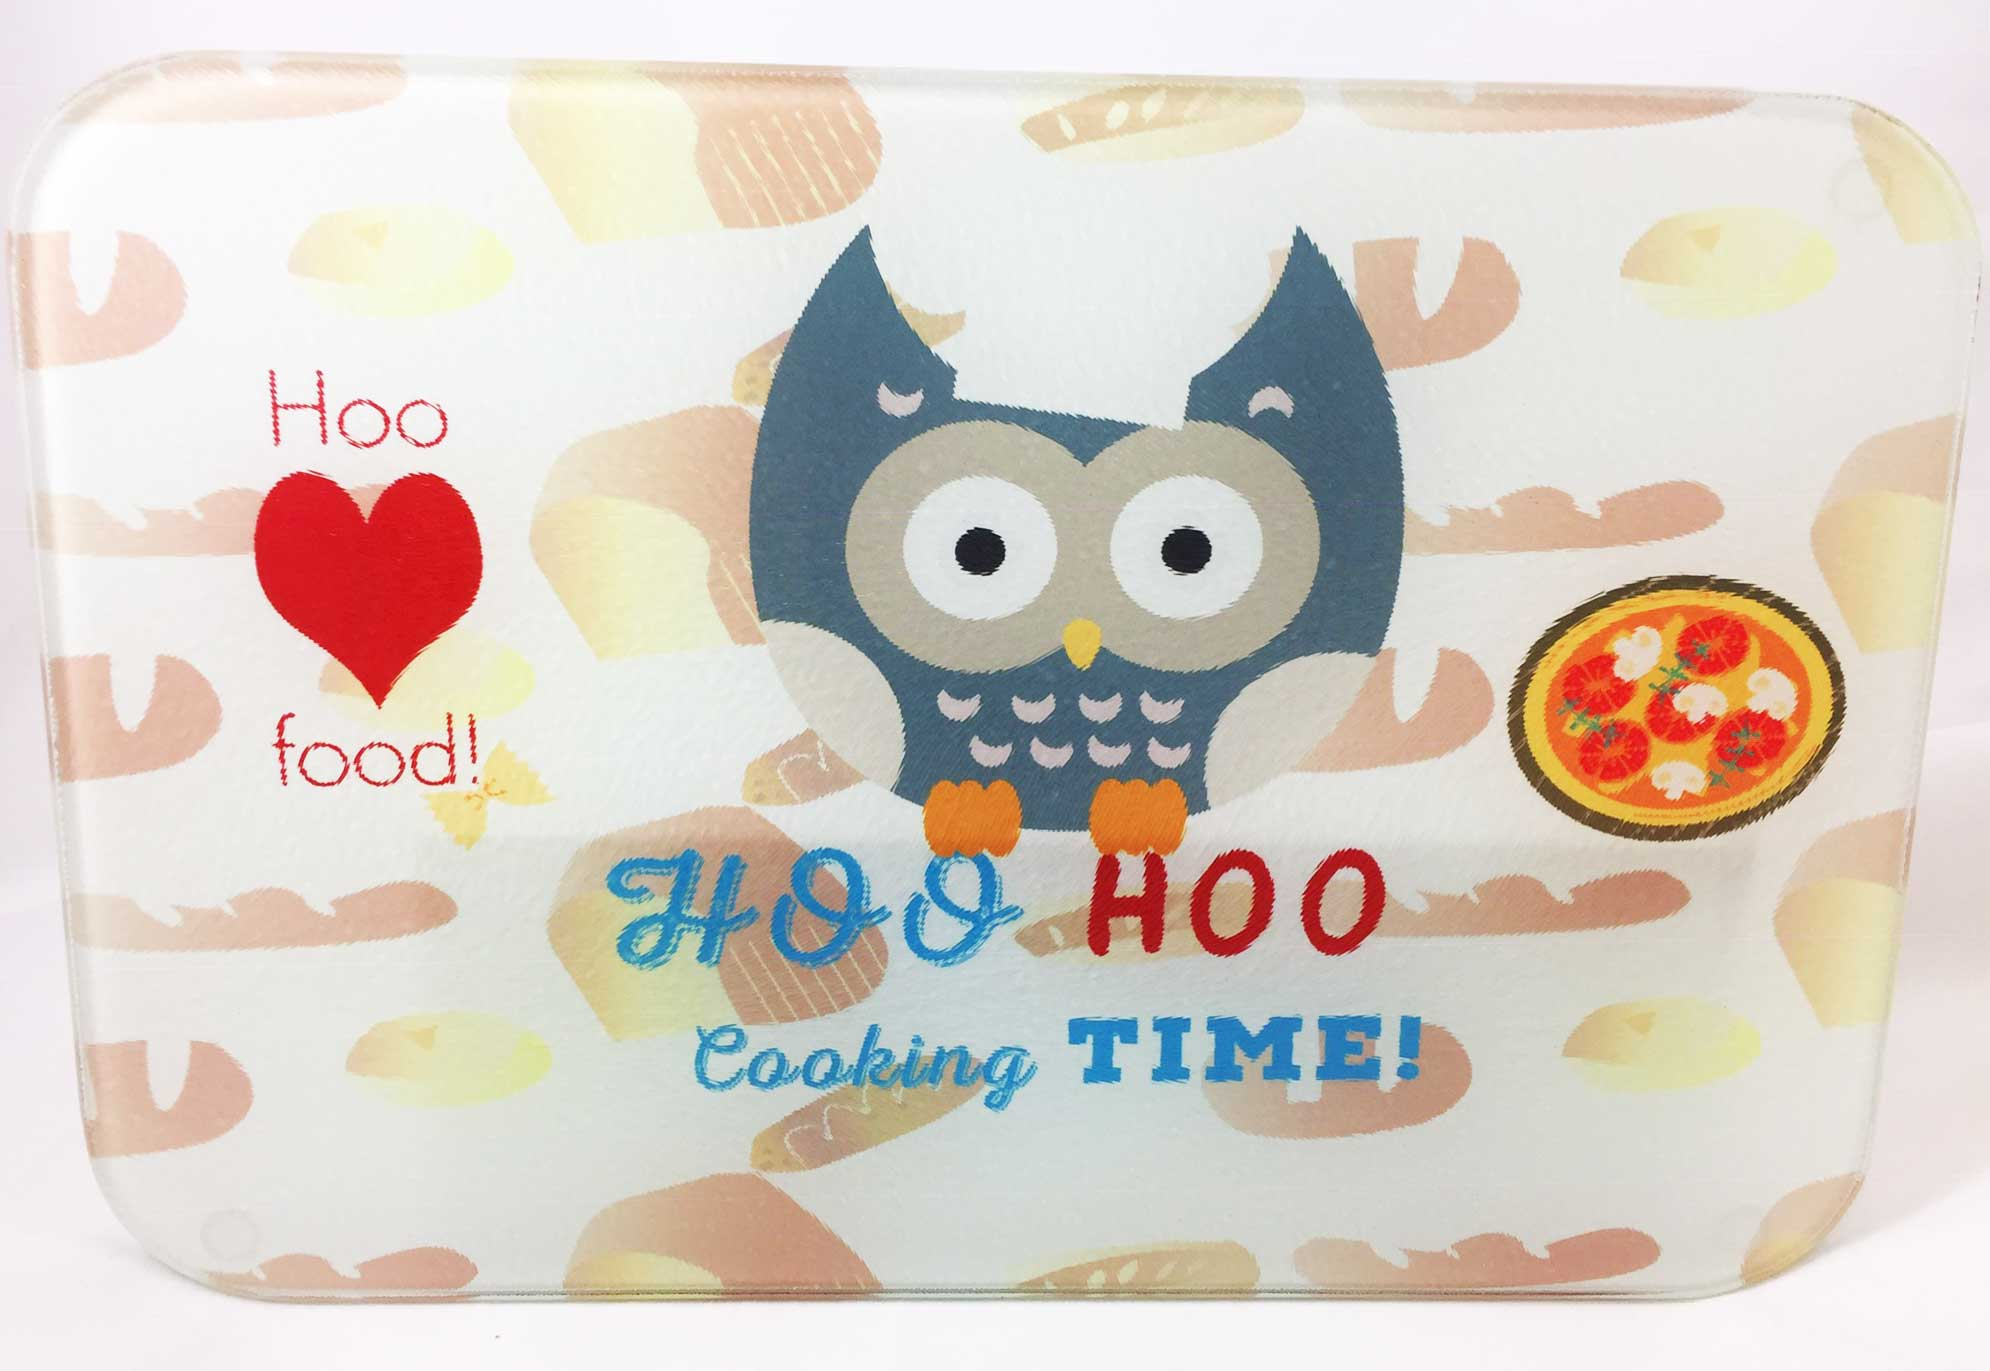 hoo cooking time-Cutting Board - Aspireimaginary